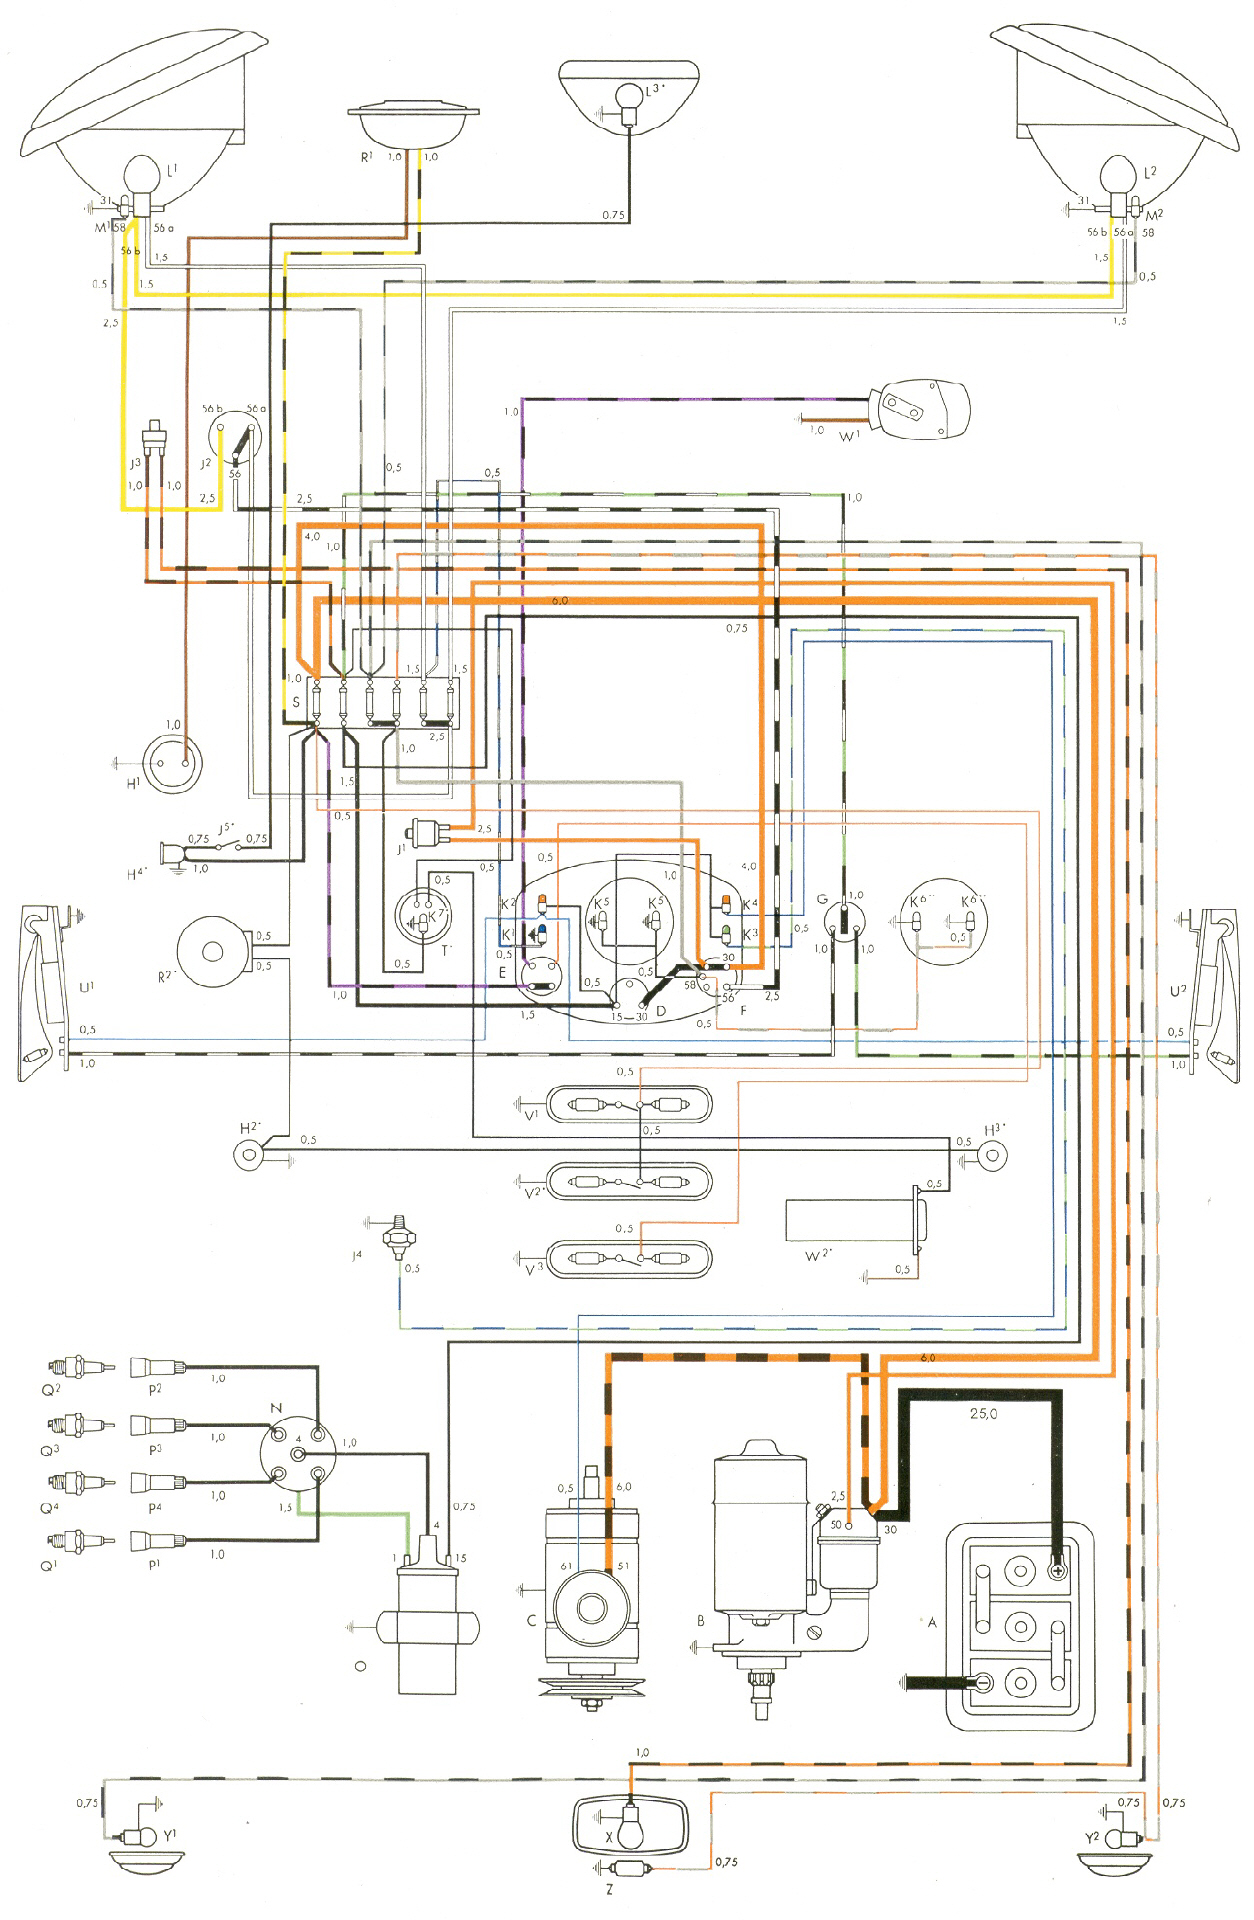 72 Vw Super Beetle Wiring Diagram Start Building A 1976 Bug Fuse Box 2002 Schematic Rh Aikidorodez Com 1972